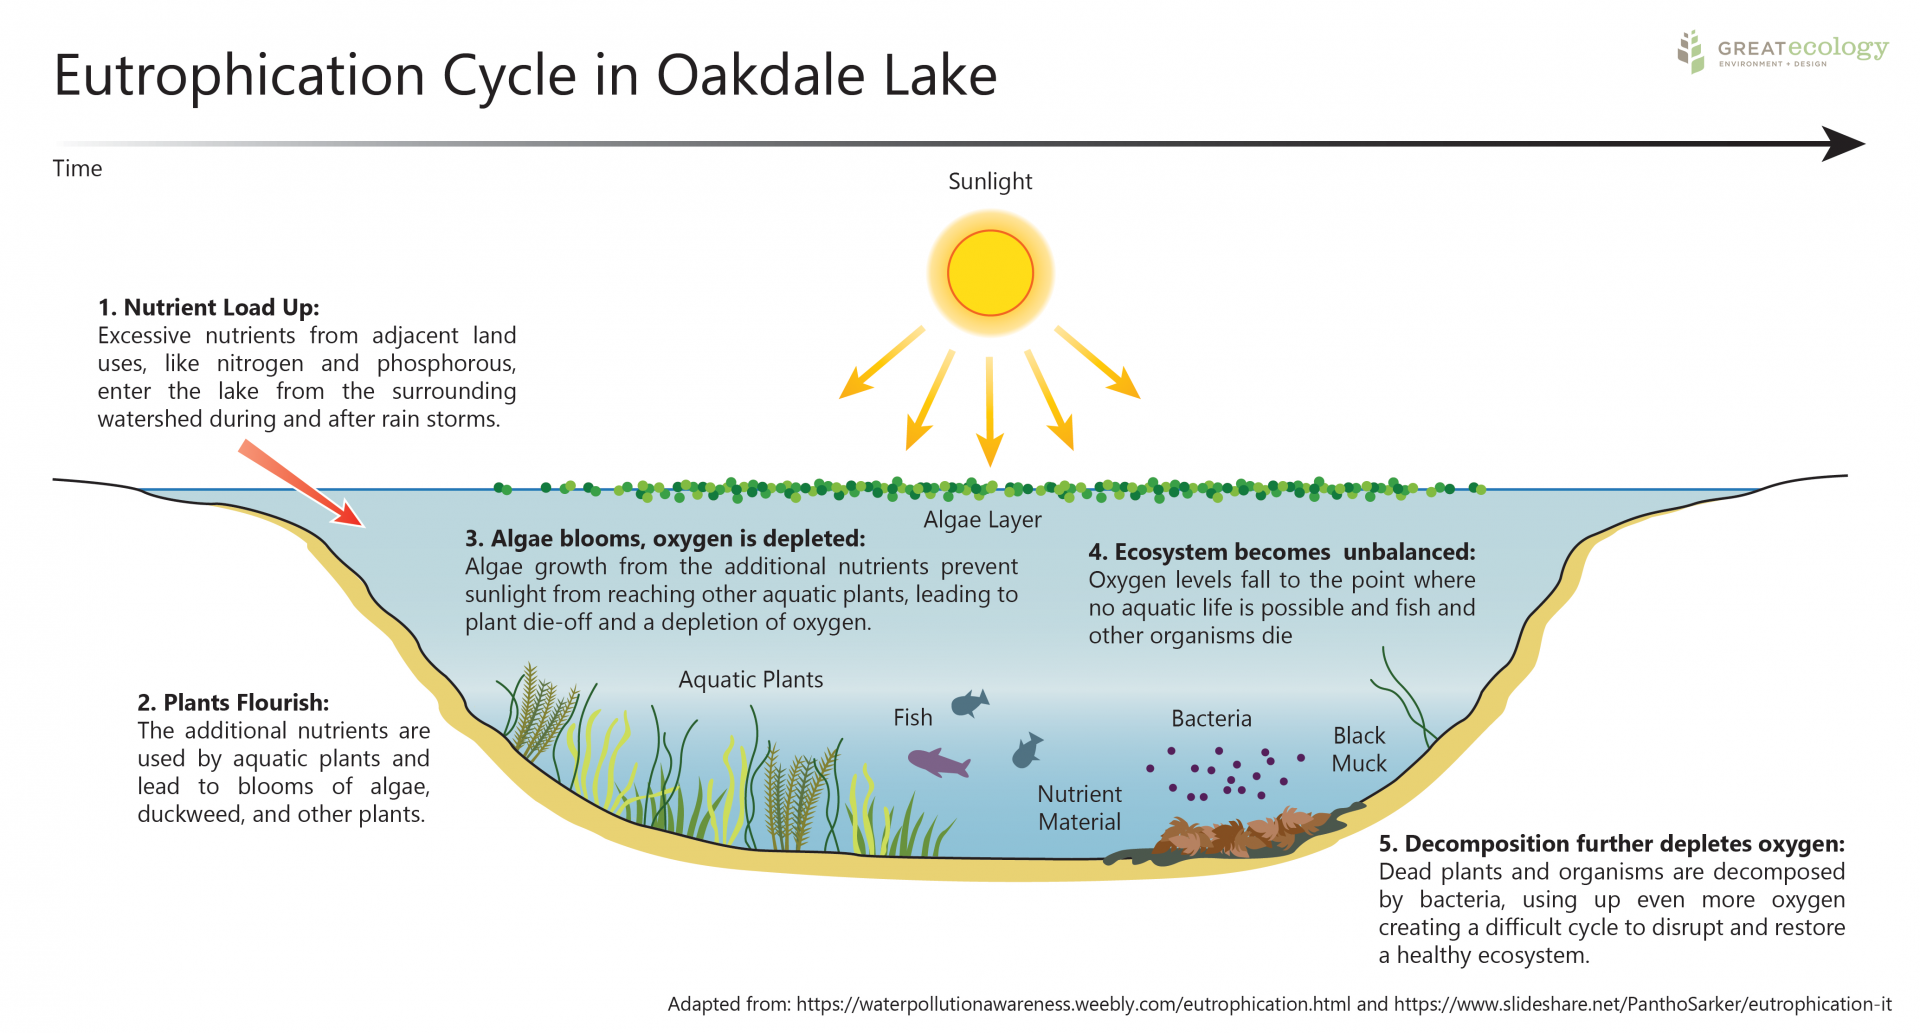 FOL_Eutrophication Graphic_20210505_WITH GE LOGO (for marketing use)